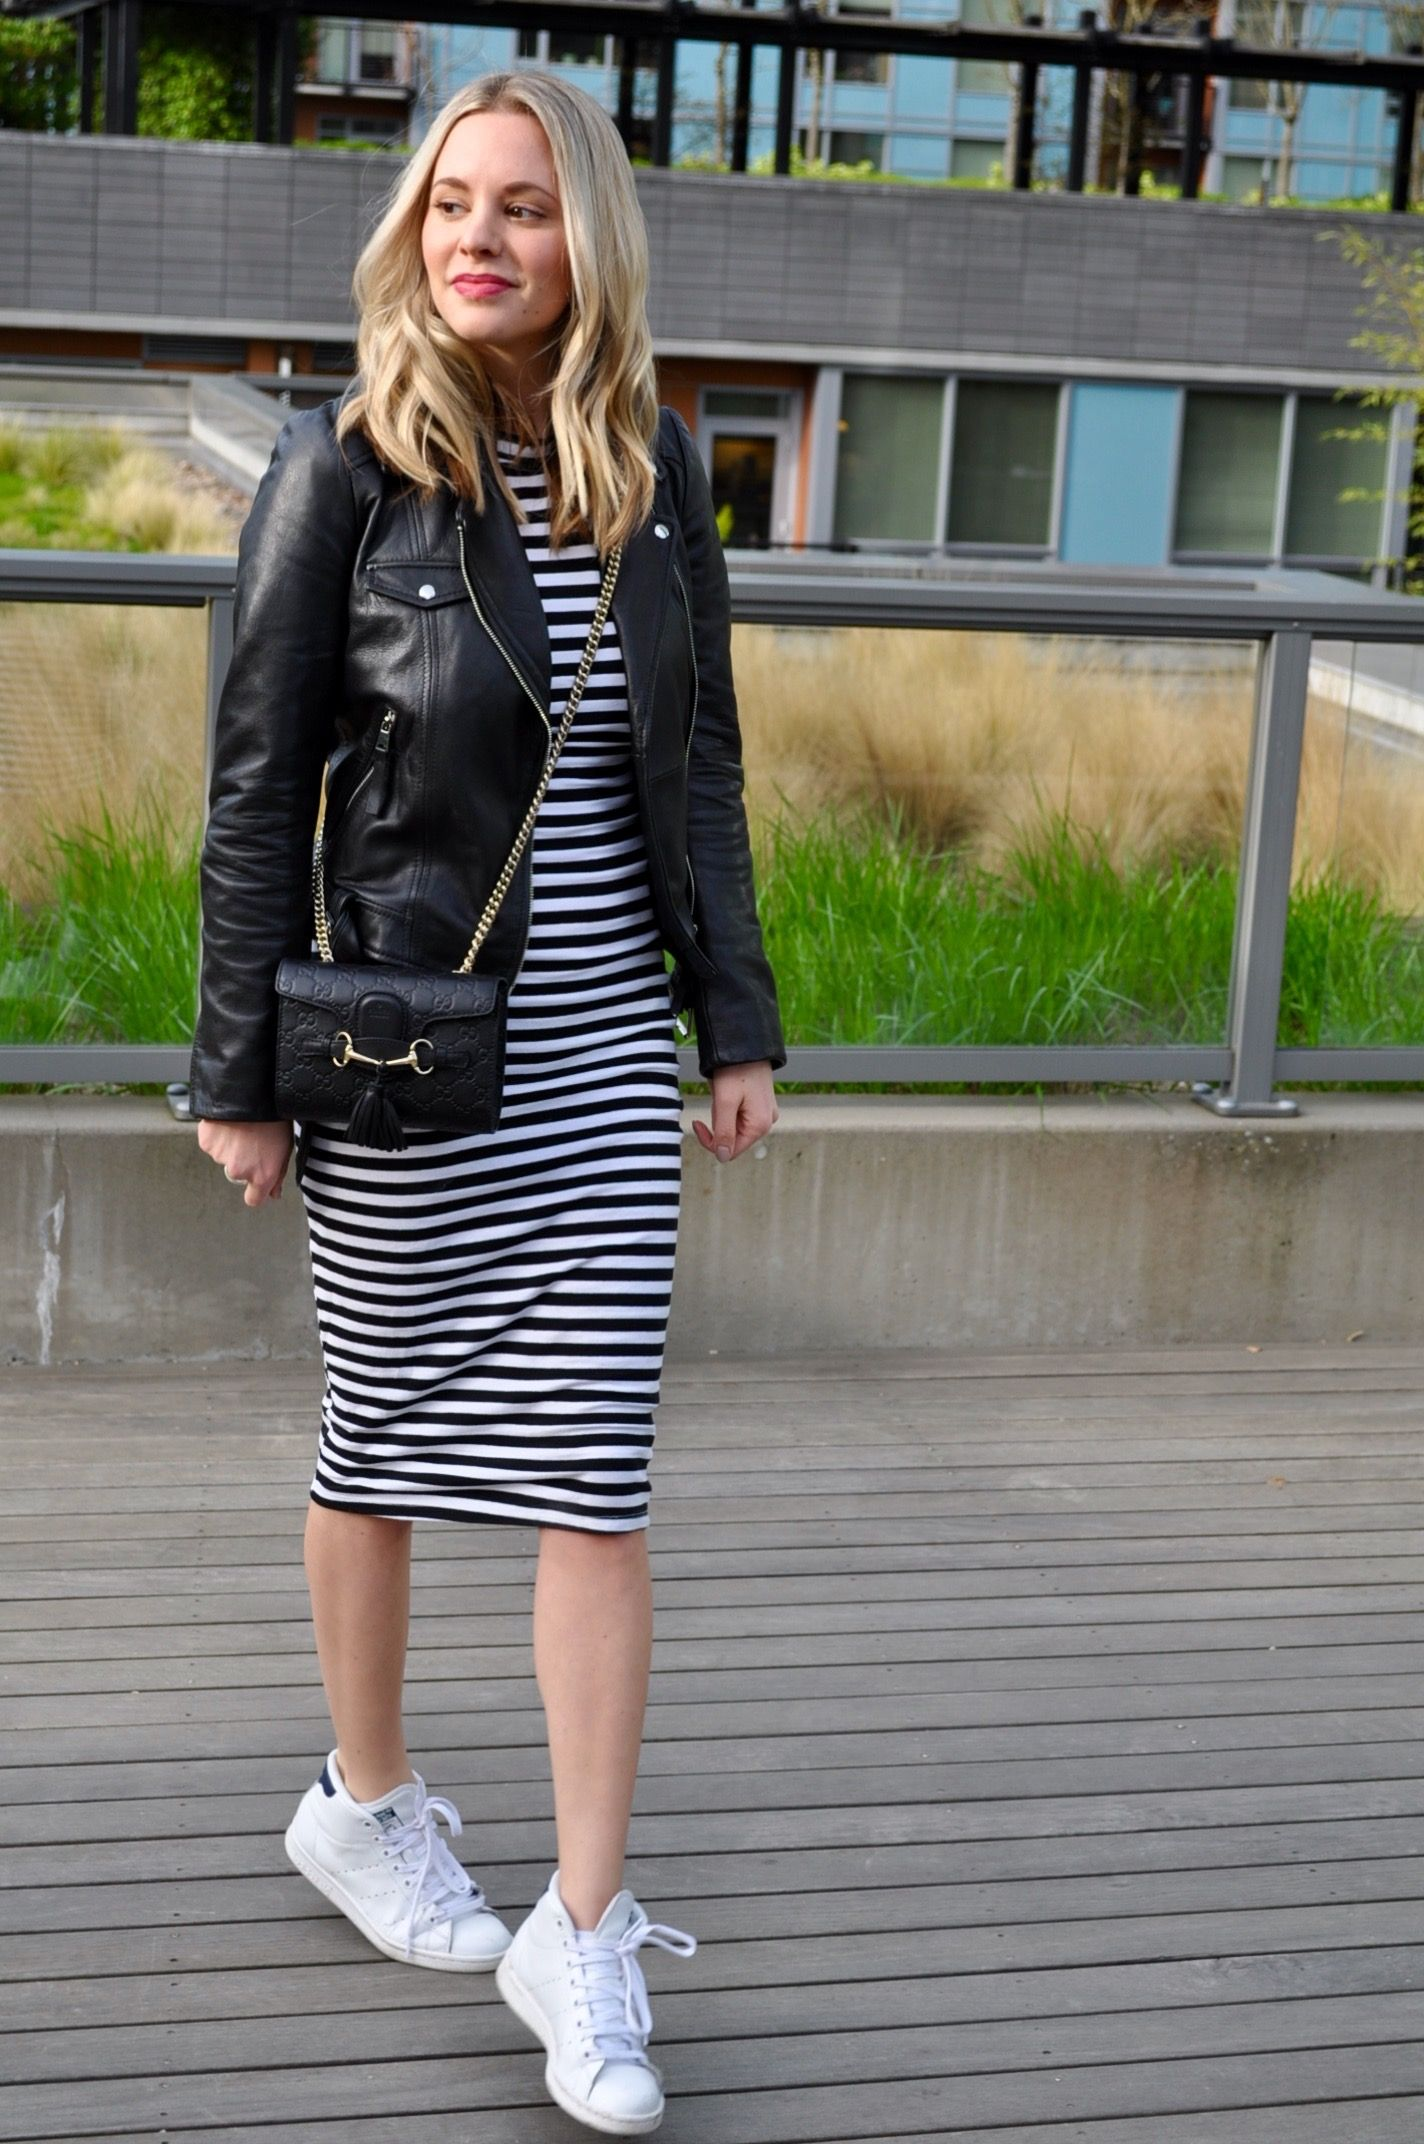 Striped midi dress and leather jacket and sneakers outfit. (Via Confessions  of a Product Junkie blog.) c295c5faa